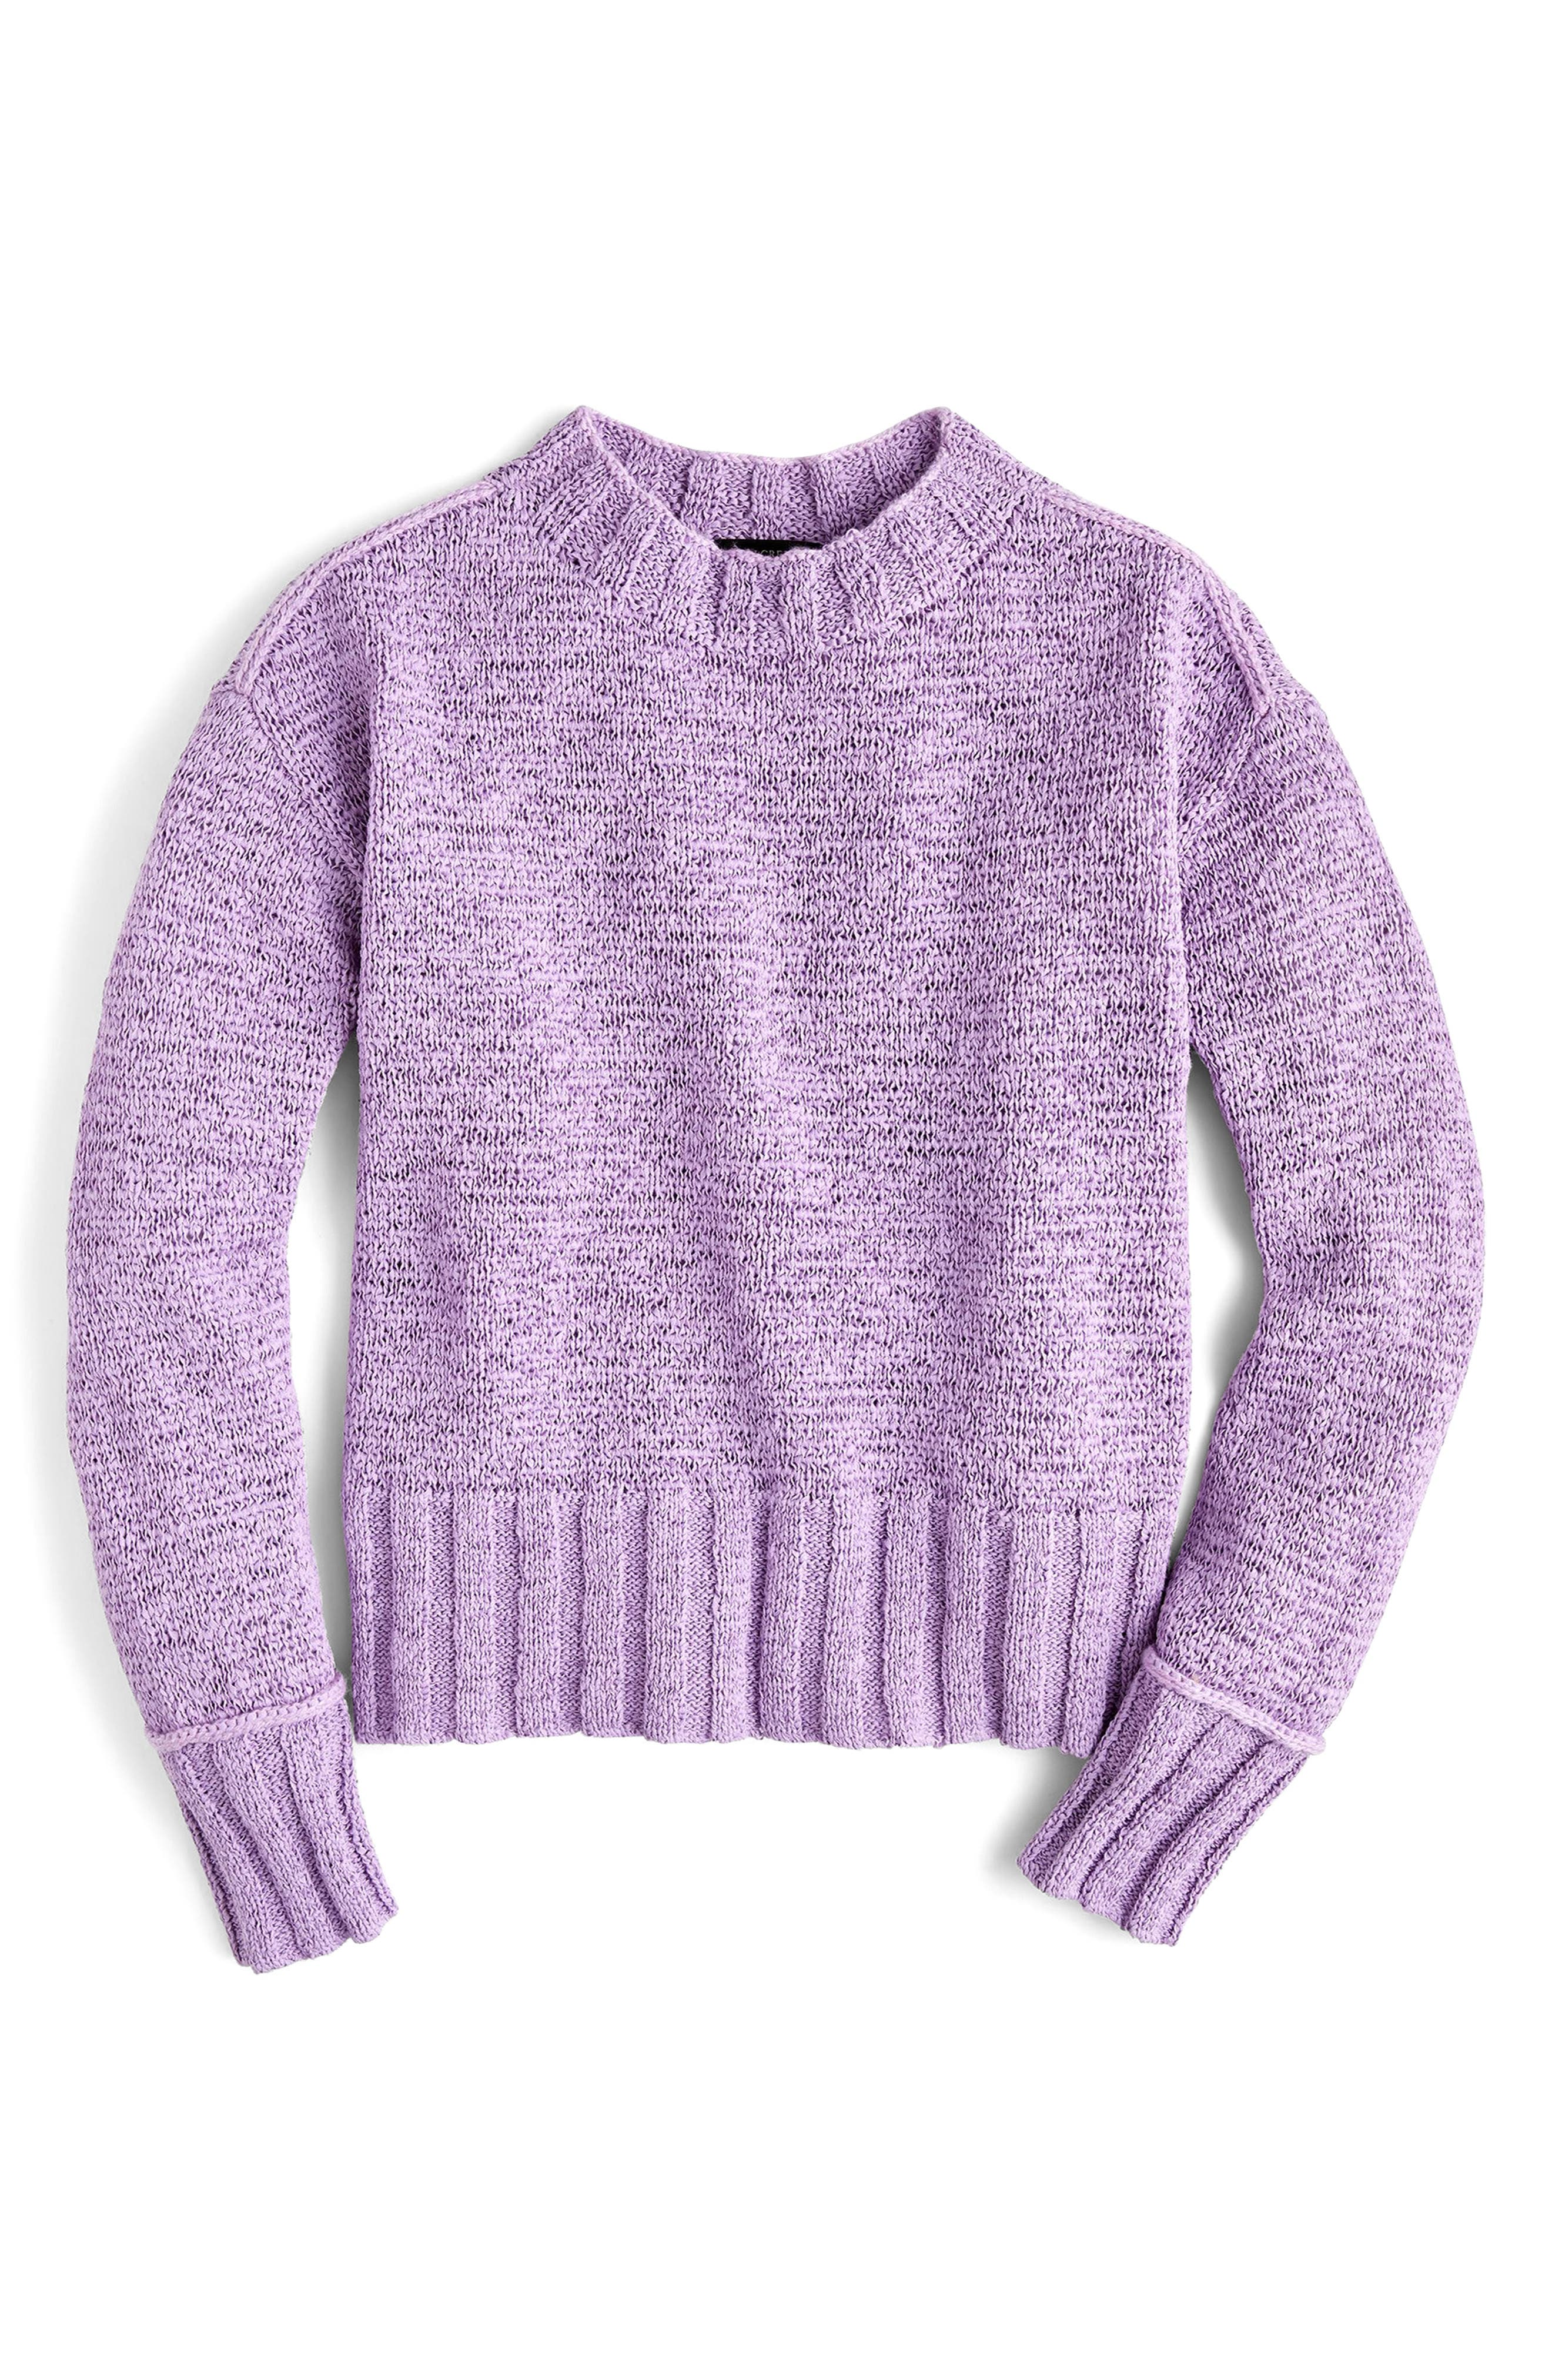 Erica Heathered Cotton Wide Rib Crewneck Sweater,                             Main thumbnail 3, color,